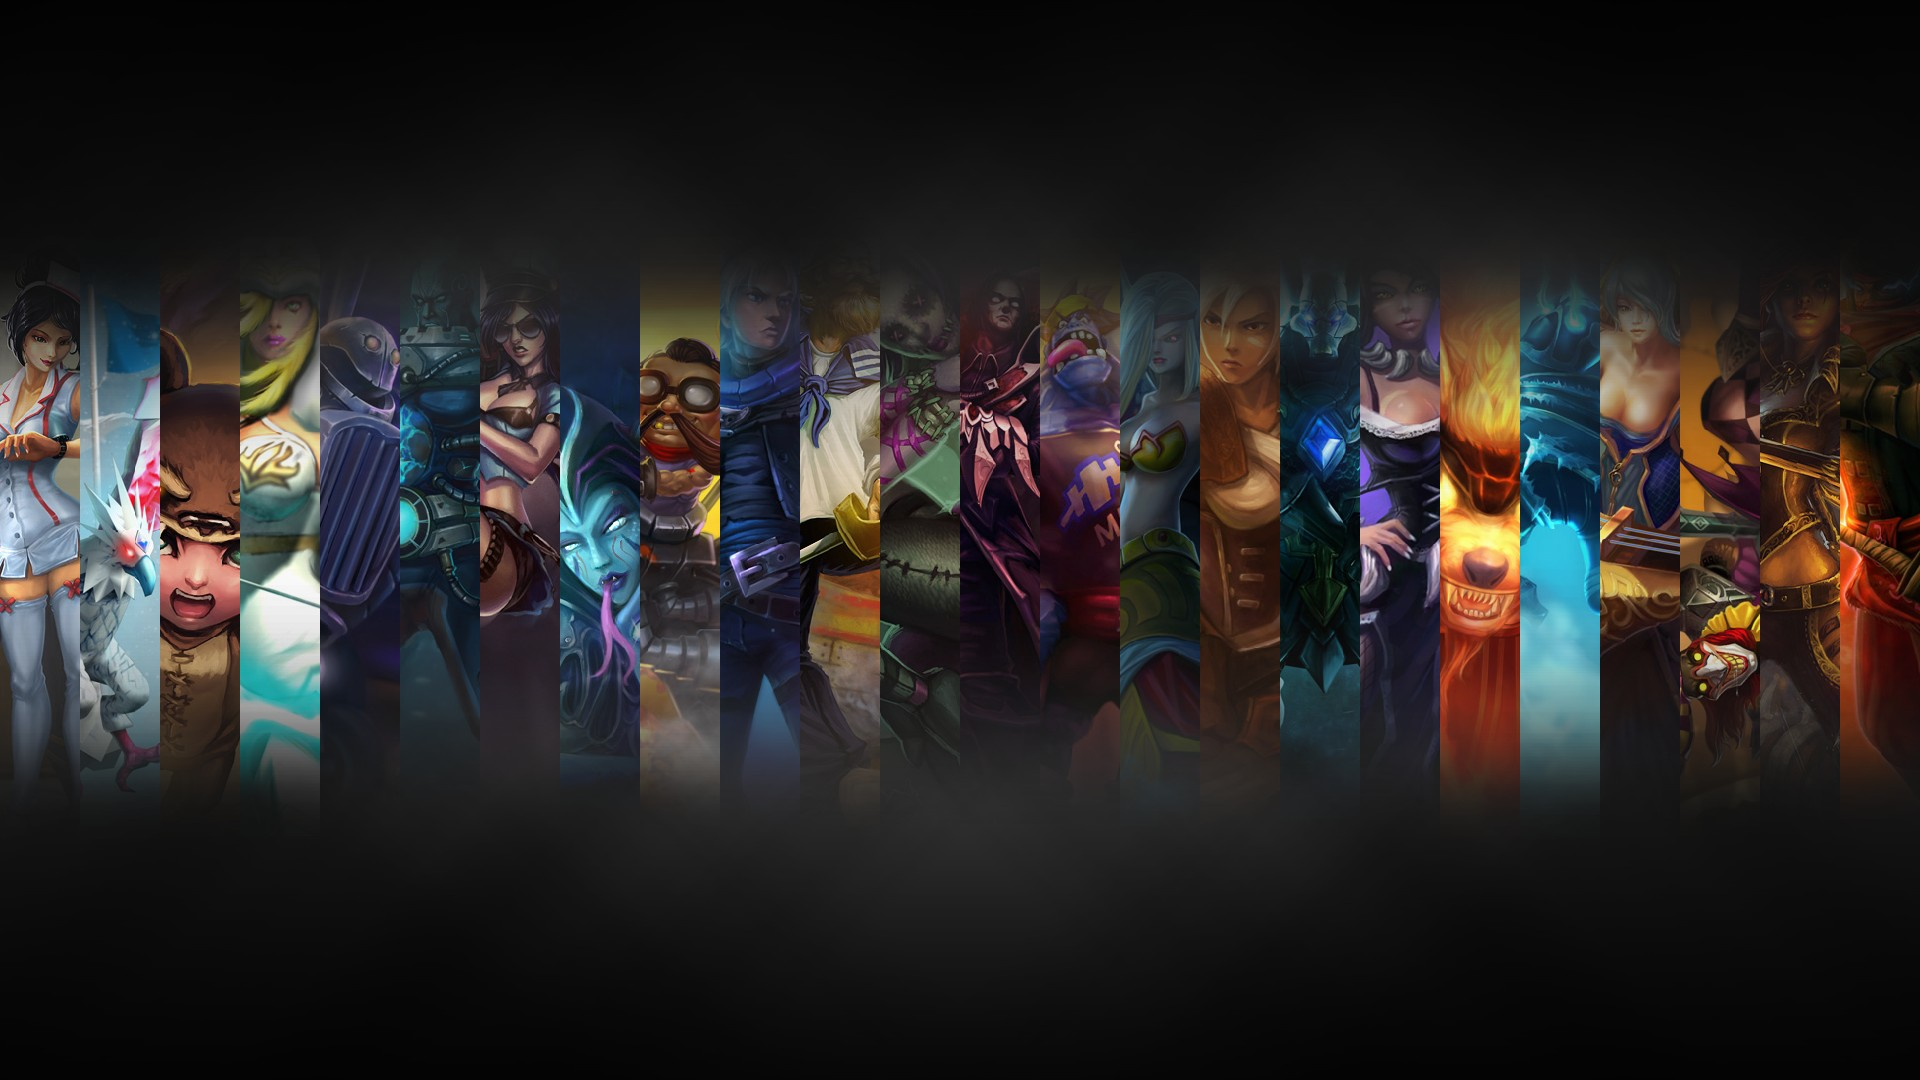 Download Gaming Wallpapers 1920x1080 Hd Backgrounds Download